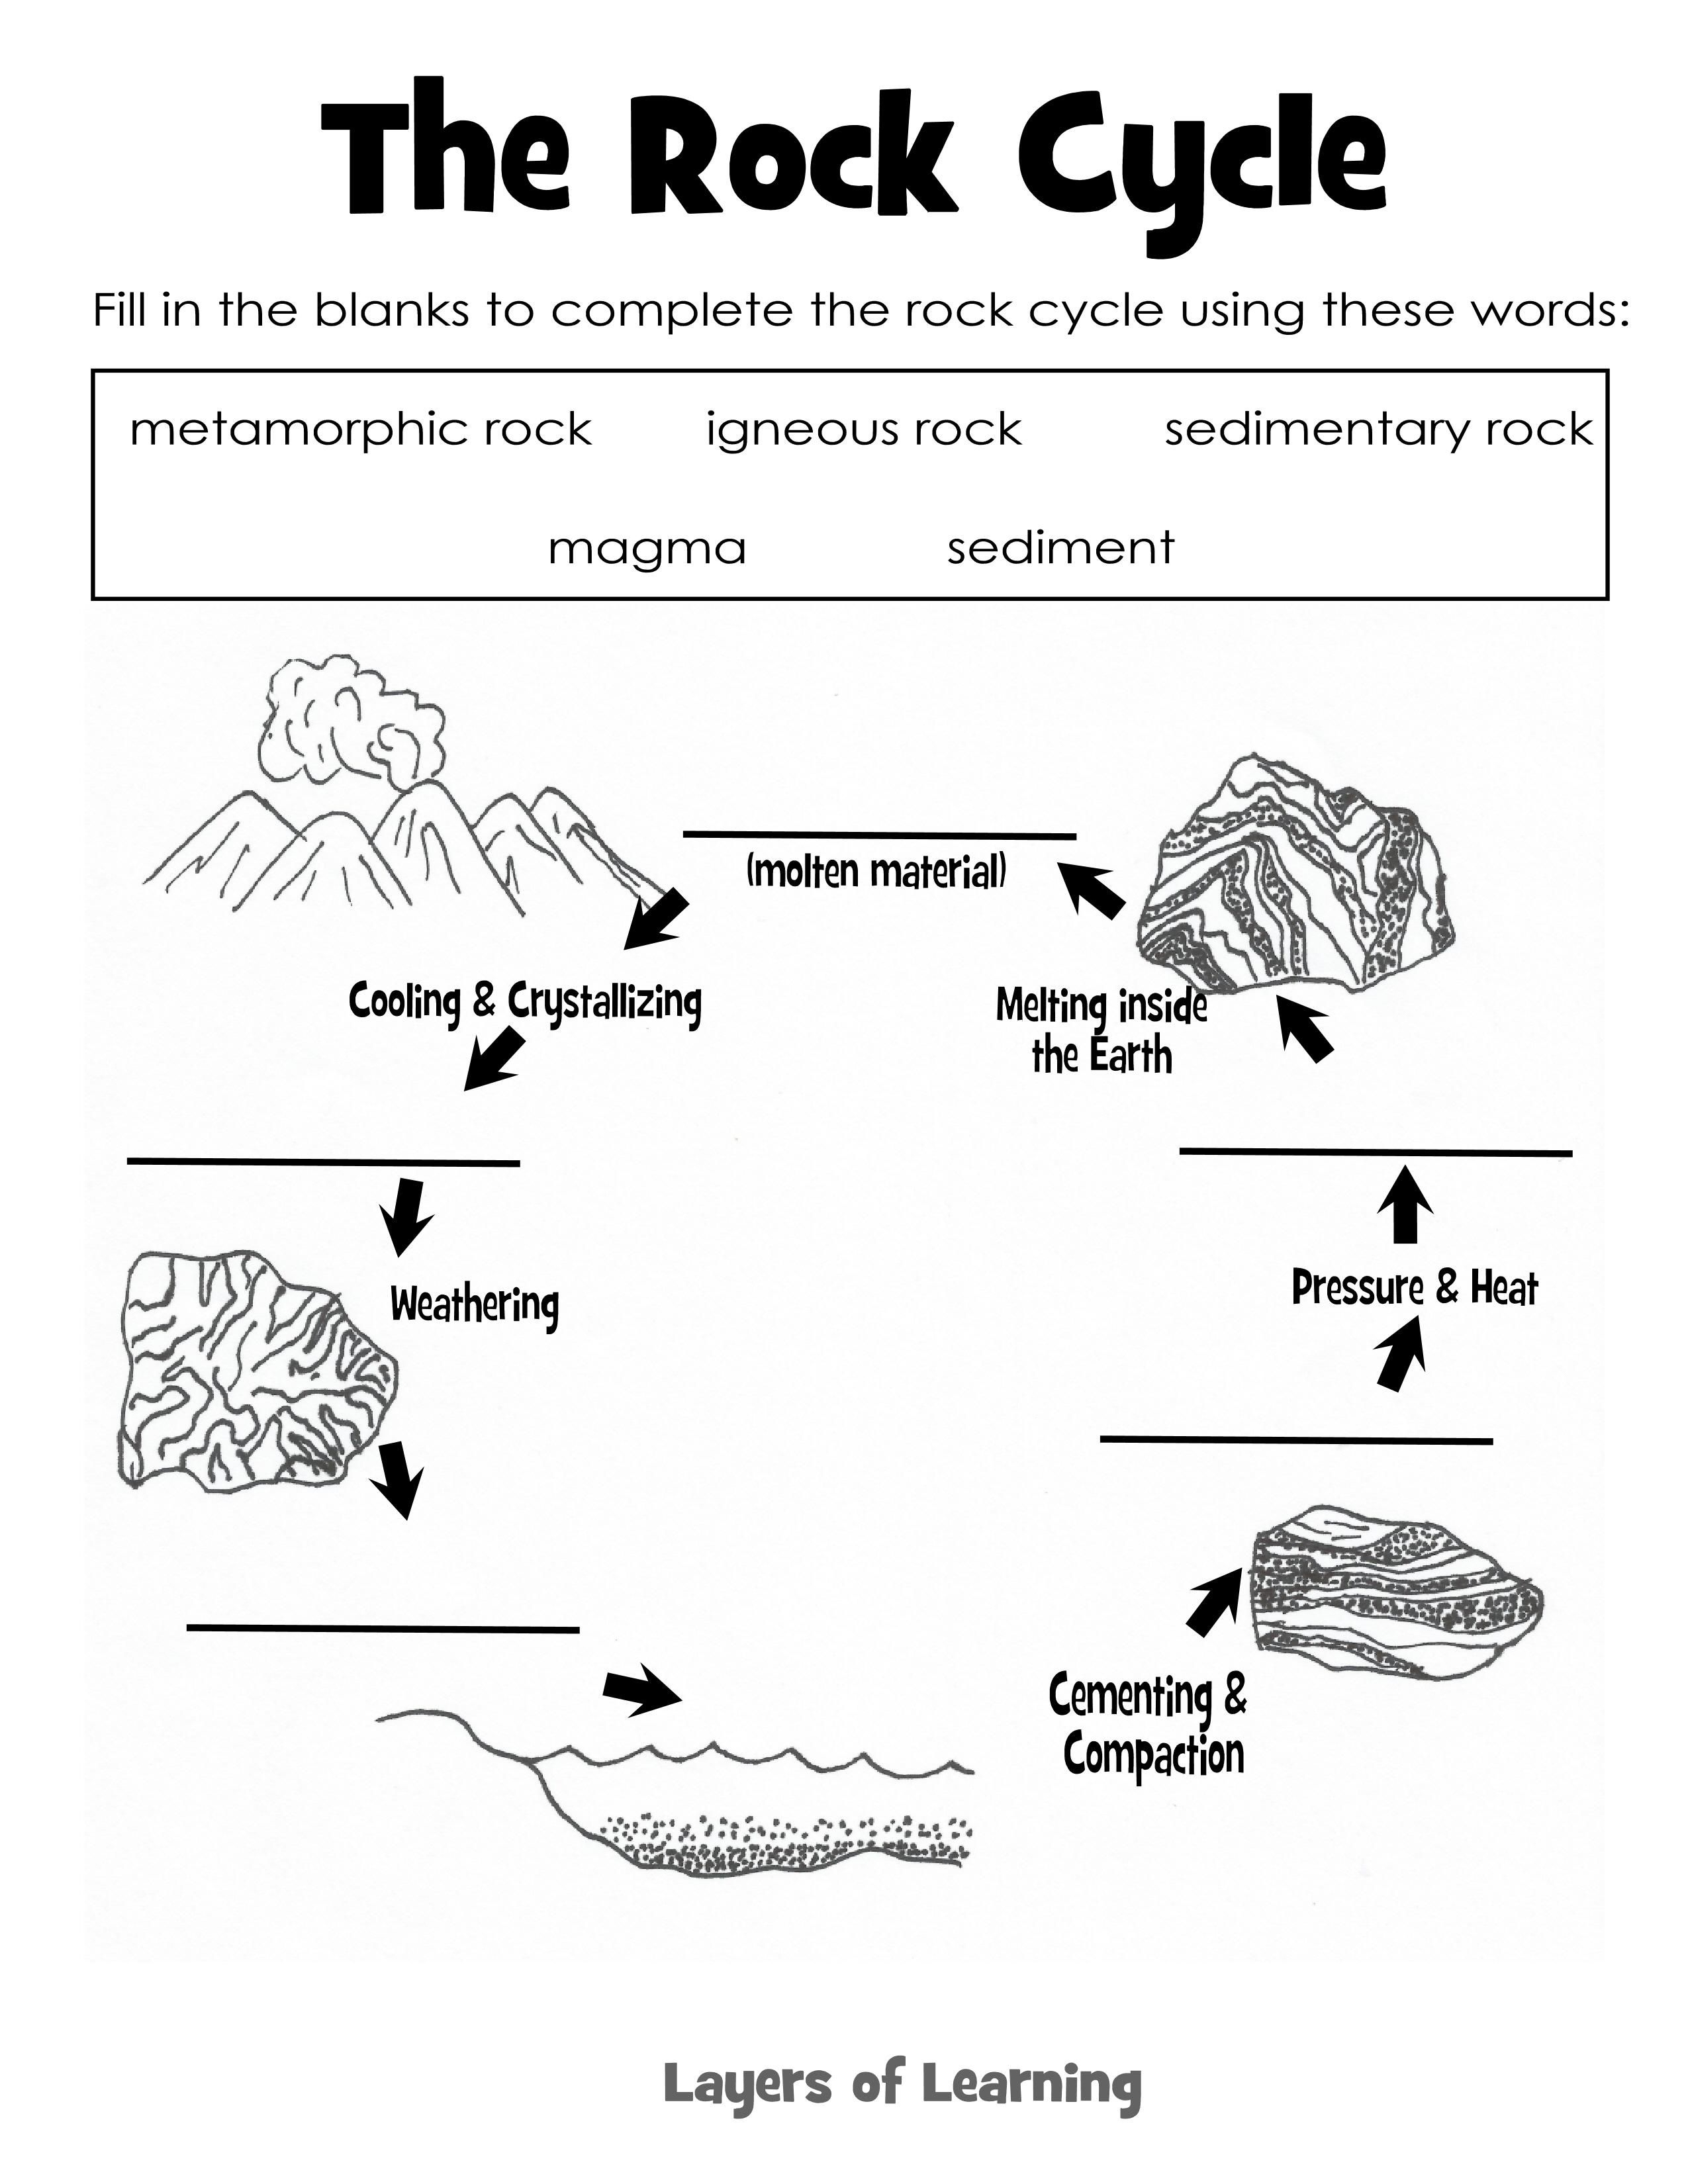 Learning About Rocks | Science | Rock Cycle, Science Worksheets - Rock Cycle Worksheets Free Printable